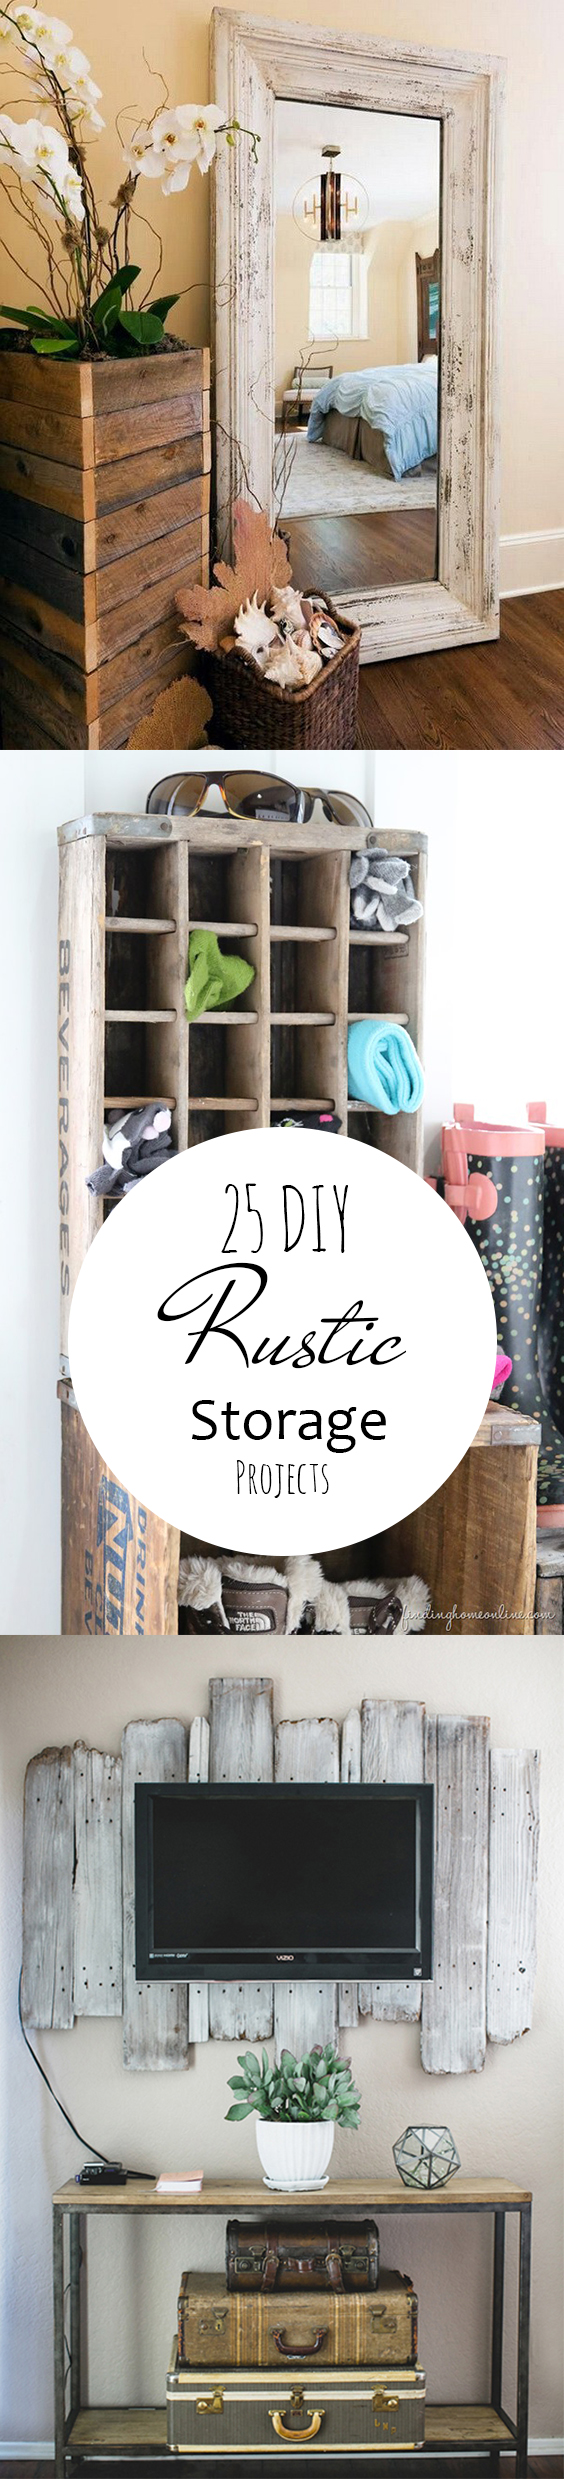 Storage Projects, Storage For the Home, Storage Hacks, Storage TIps and Tricks, Organization Tips, Organized Home, CLutter Free Living, Popular Pin.